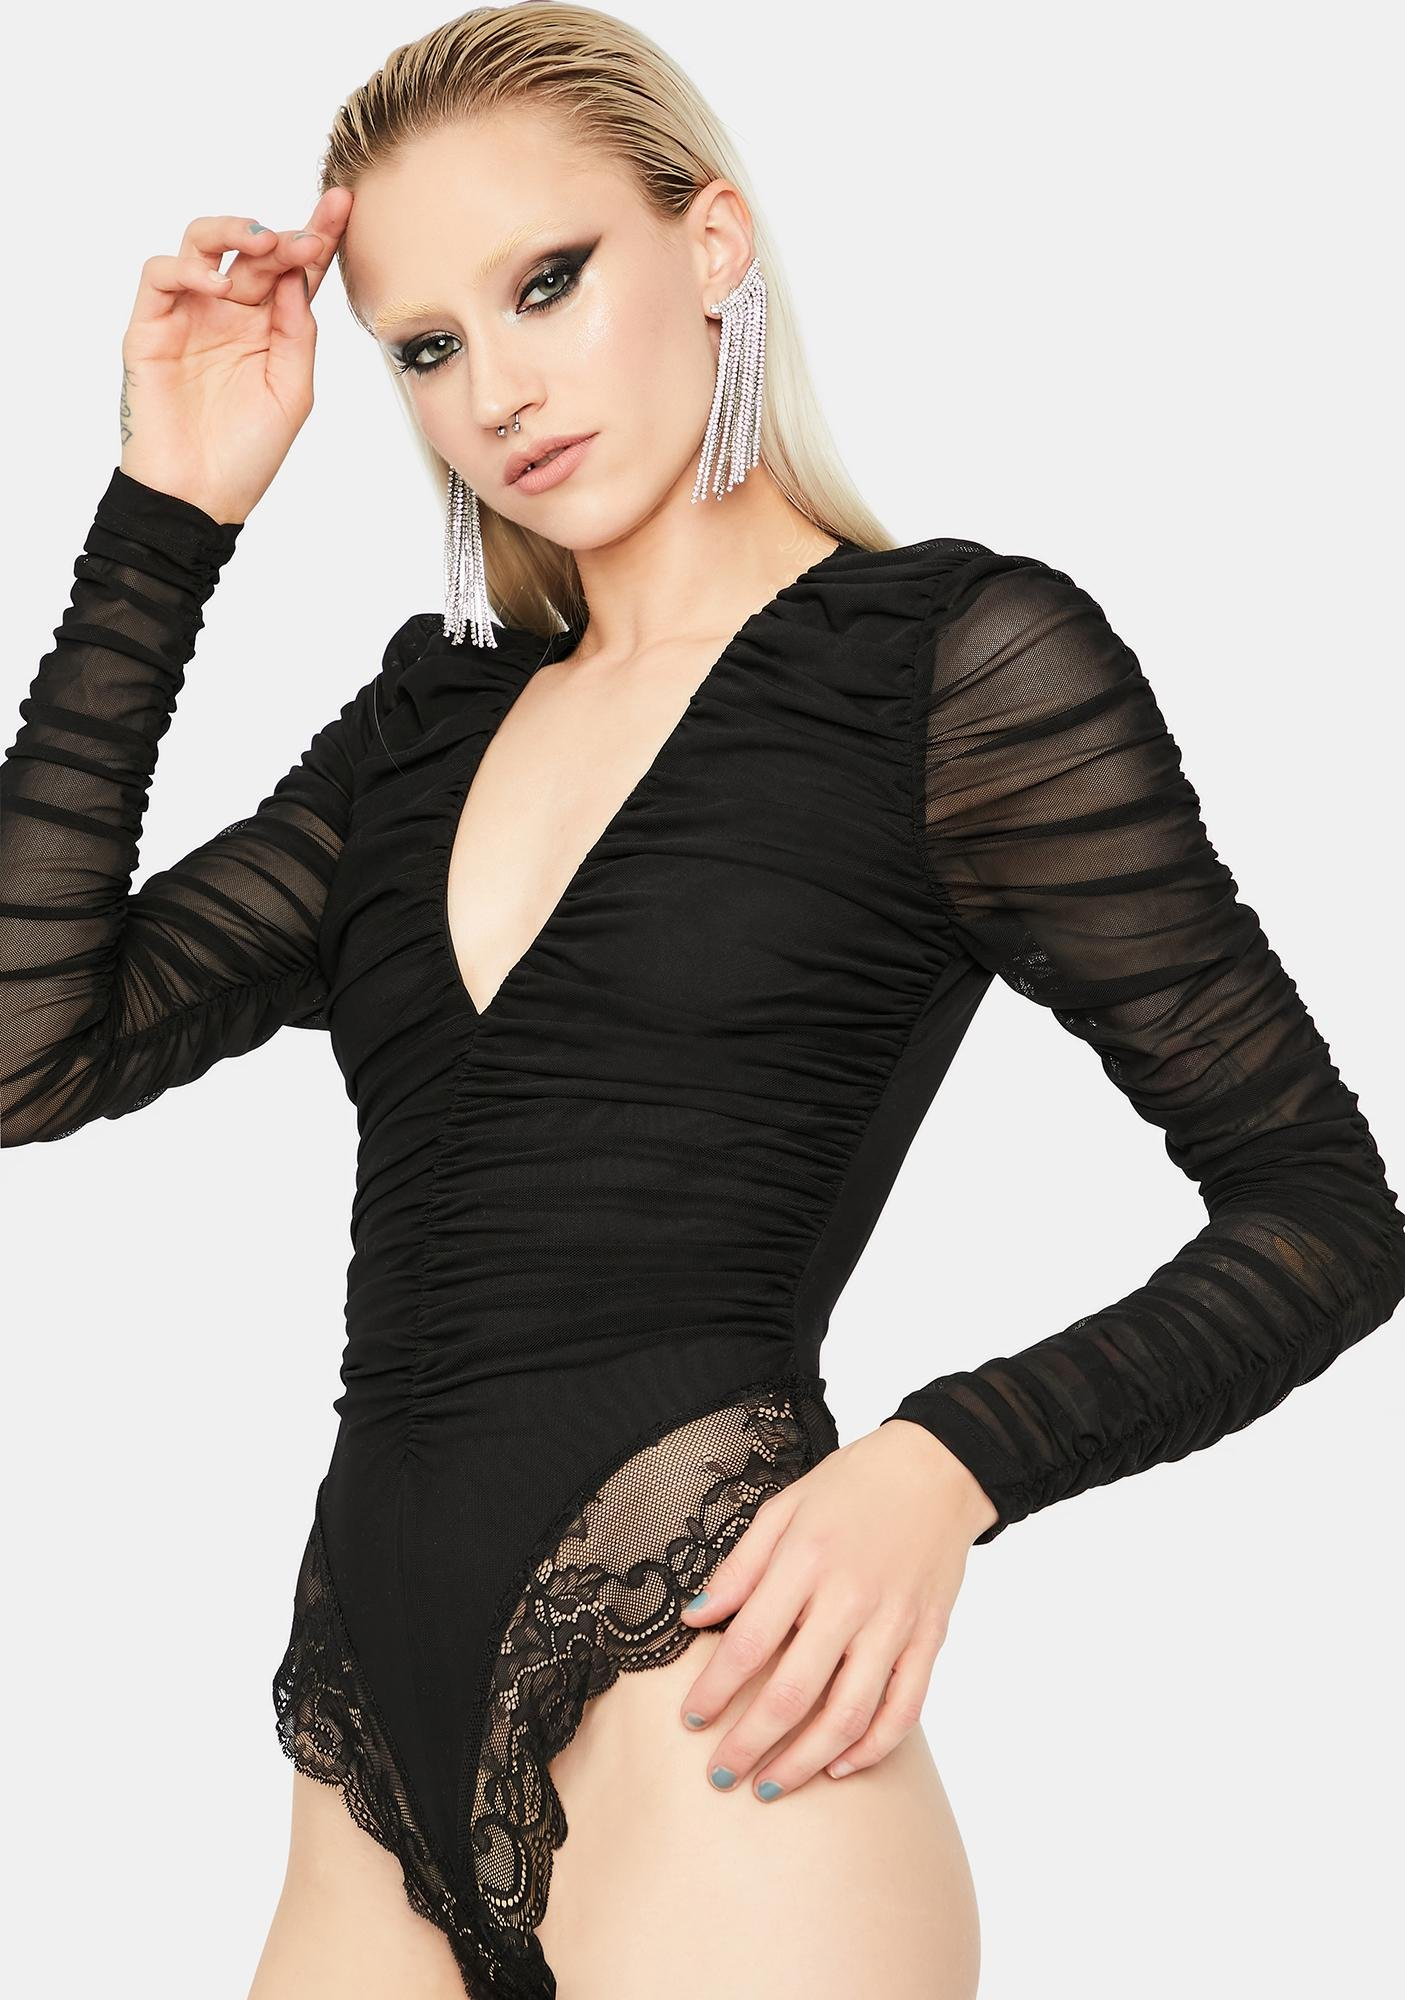 Can't Come Close Ruched Bodysuit